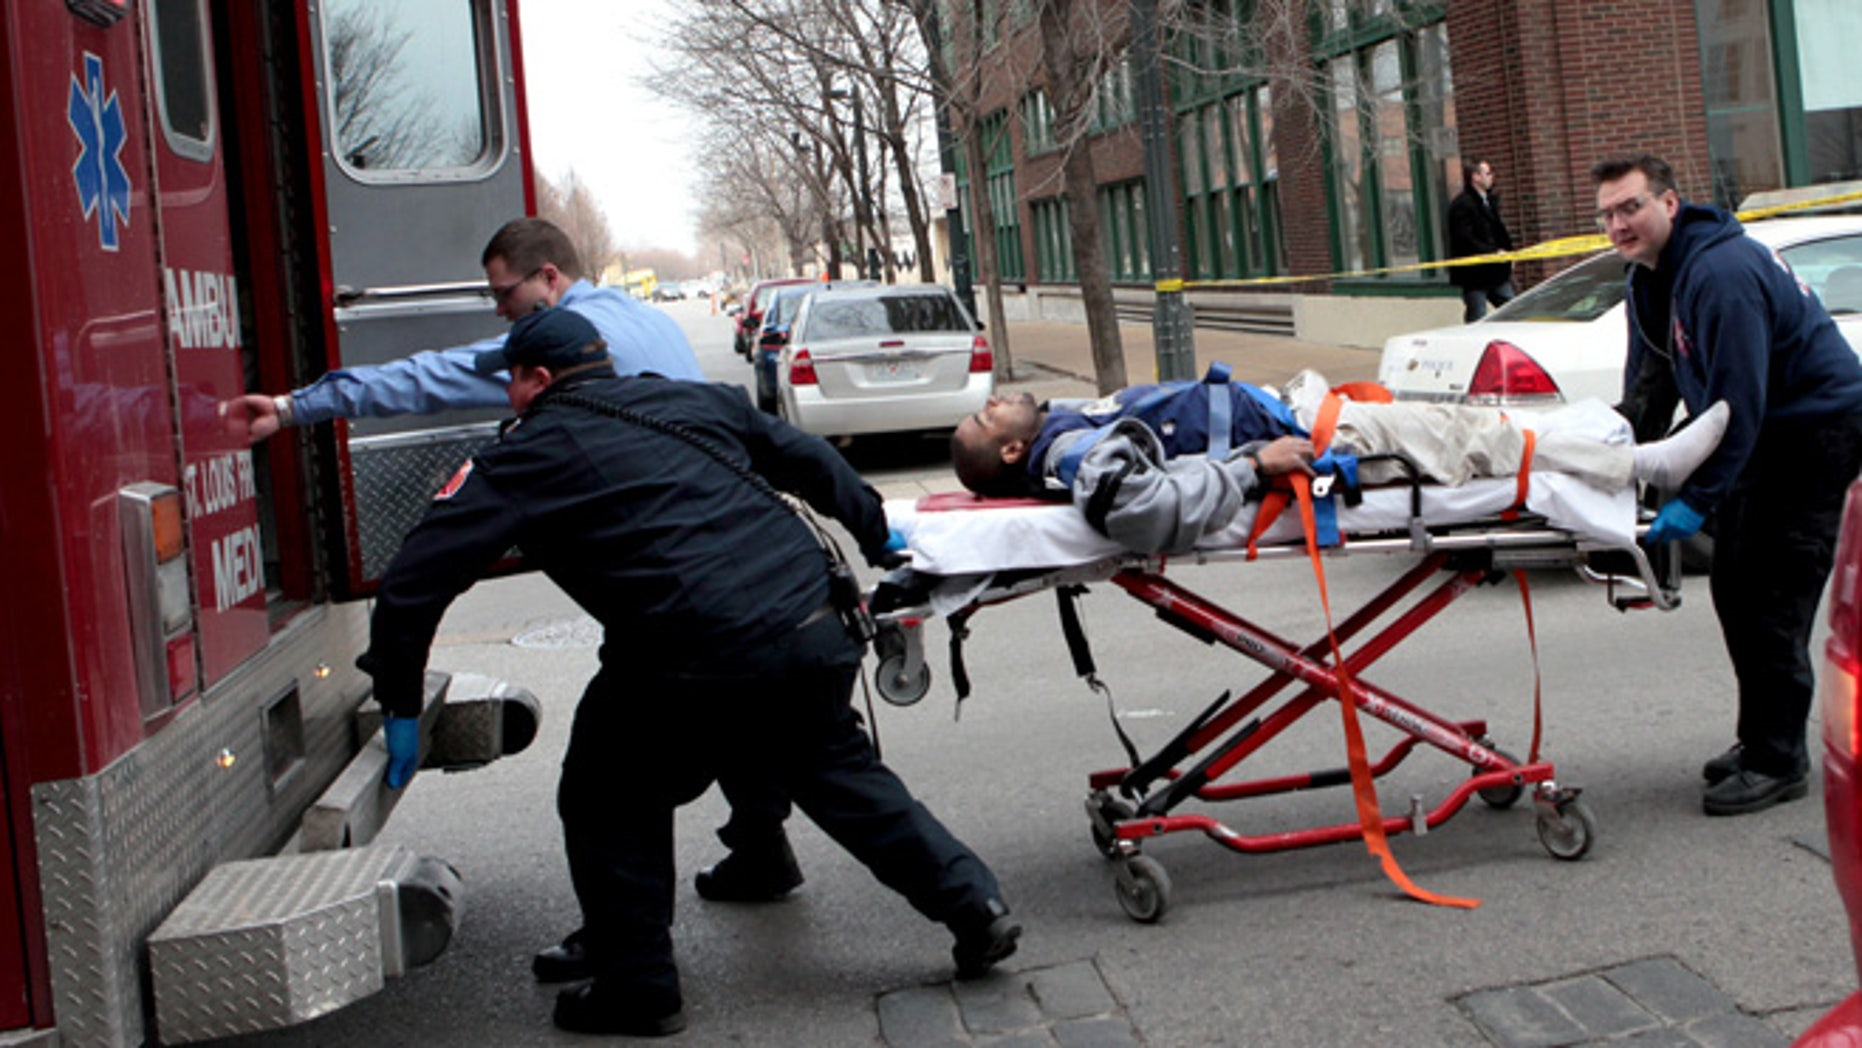 Jan. 15, 2013: Police and emergency personnel transport a man to an ambulance after a shooting at Stephens Institute of Business and Arts on Washington Avenue in St. Louis.